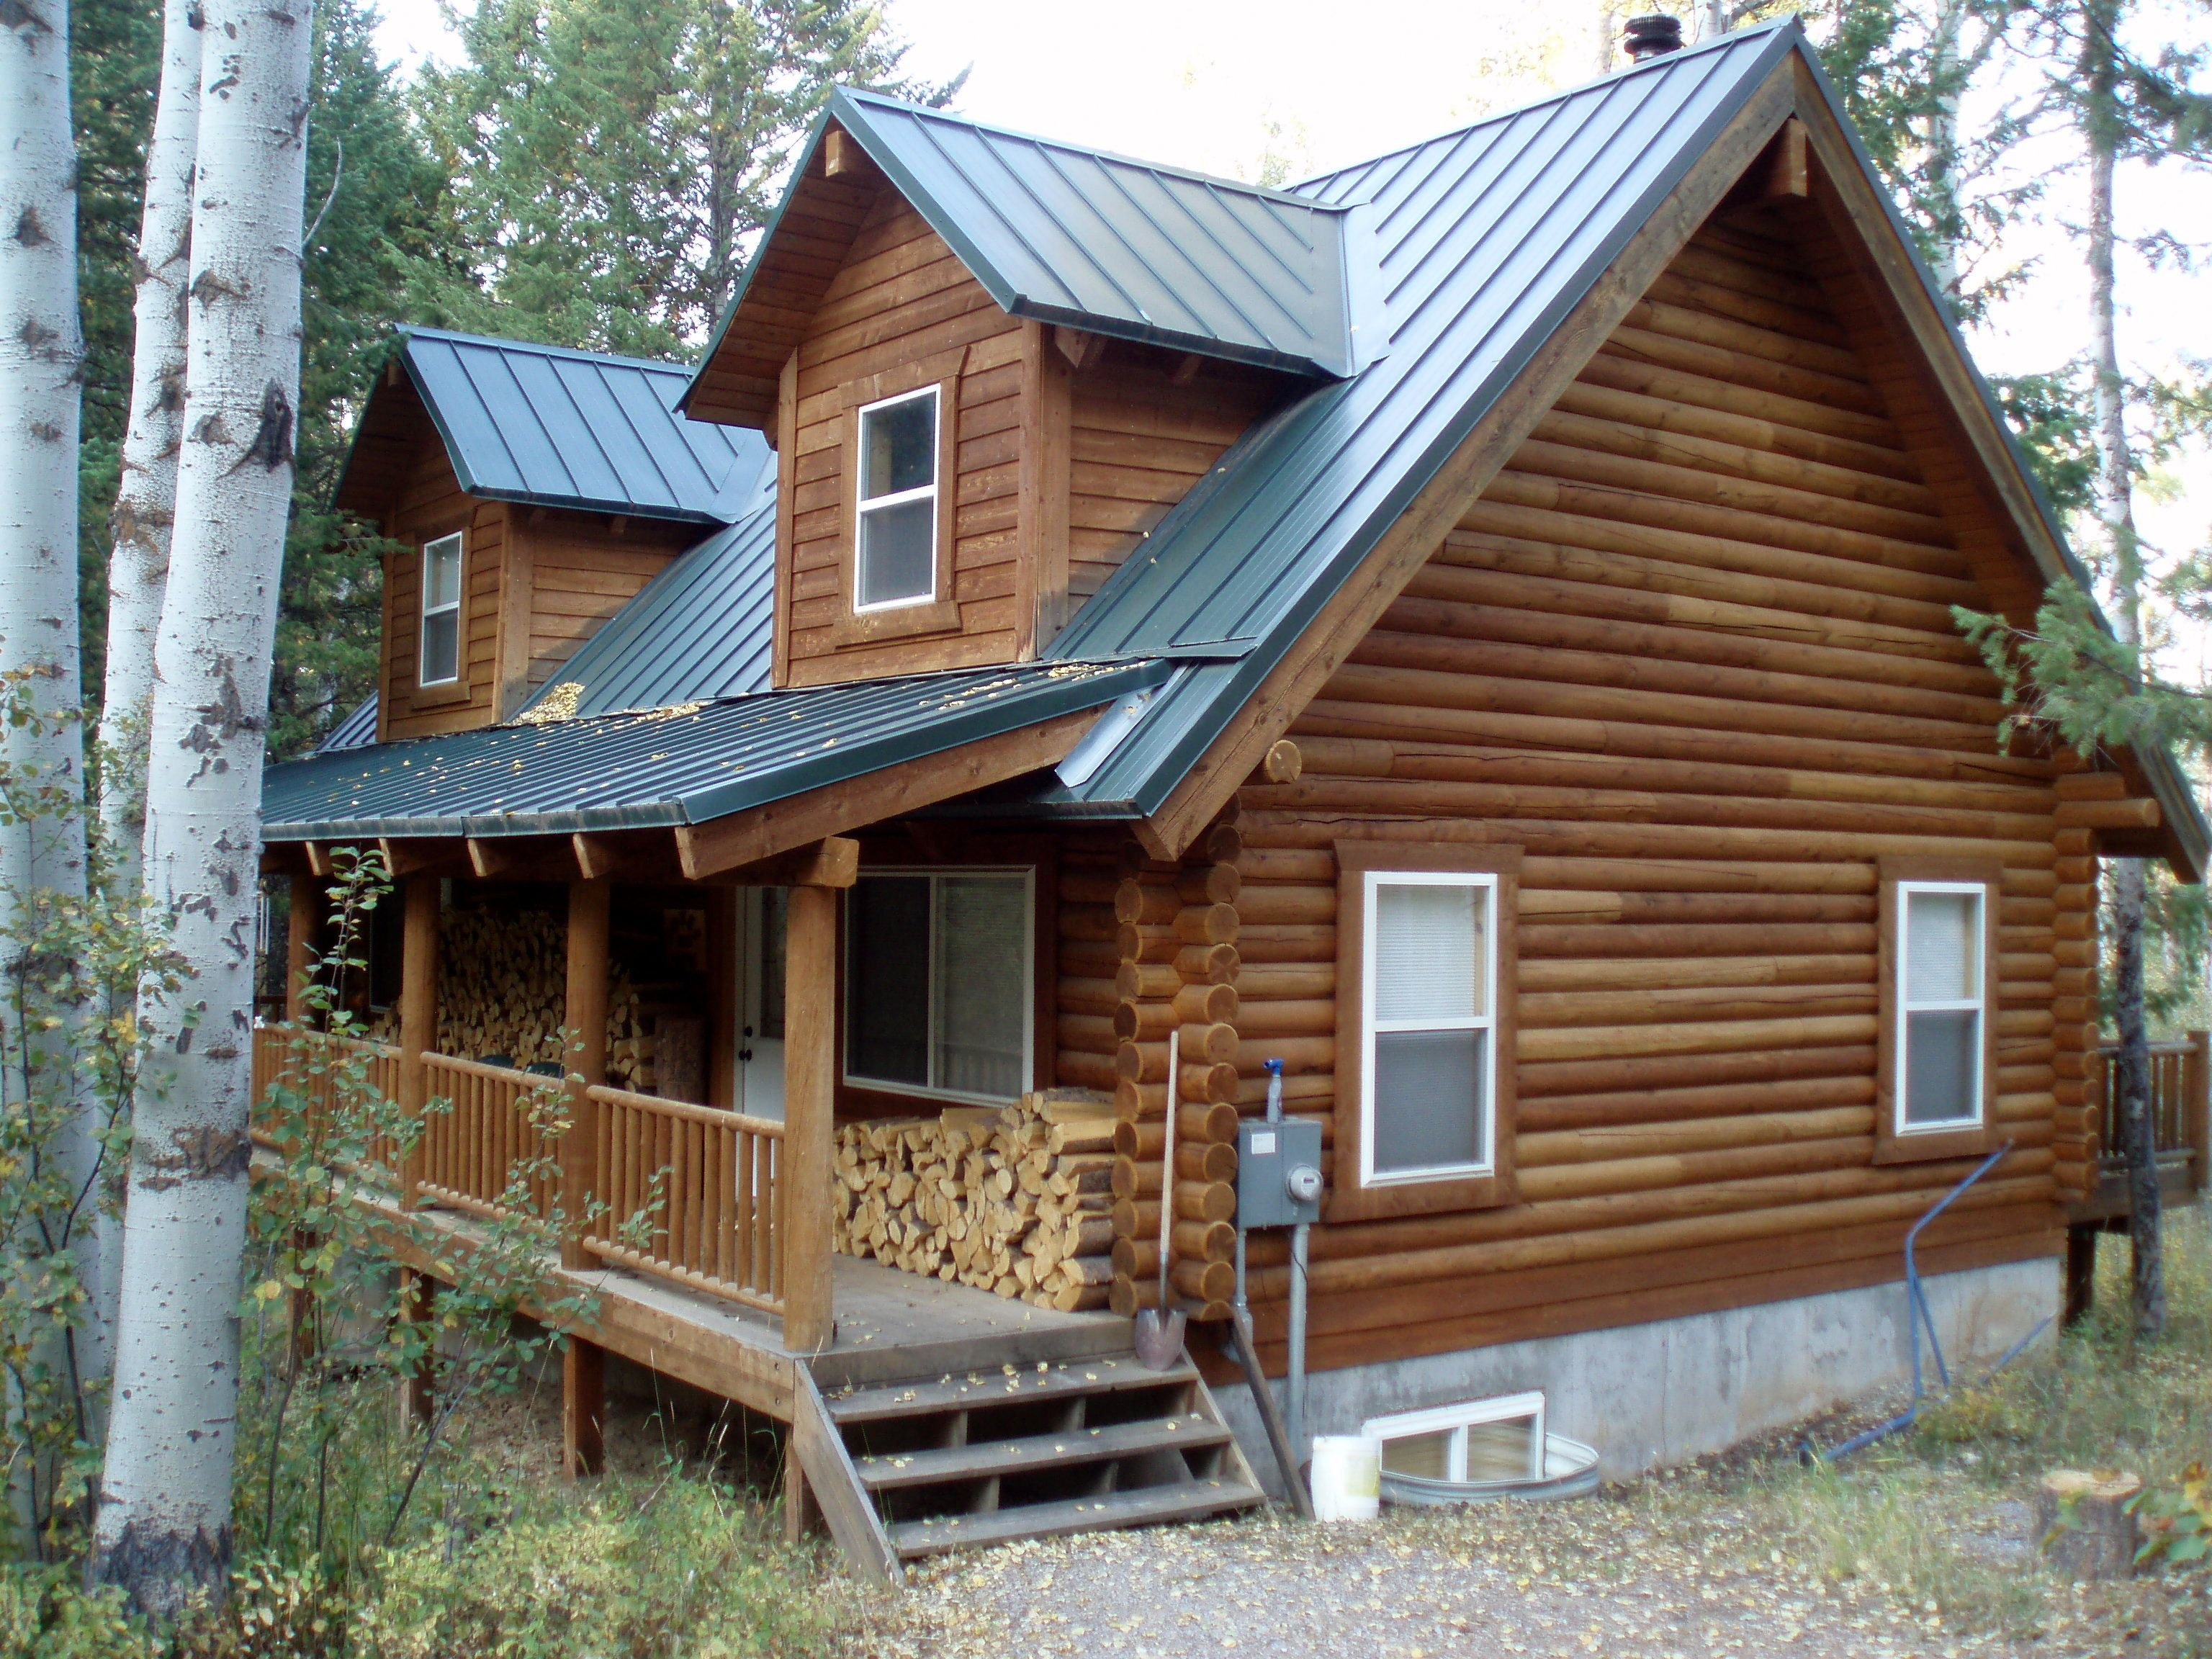 Merveilleux Bear River Country Log Homes   Log Home Packages Utah, Idaho, Wyoming | Bear